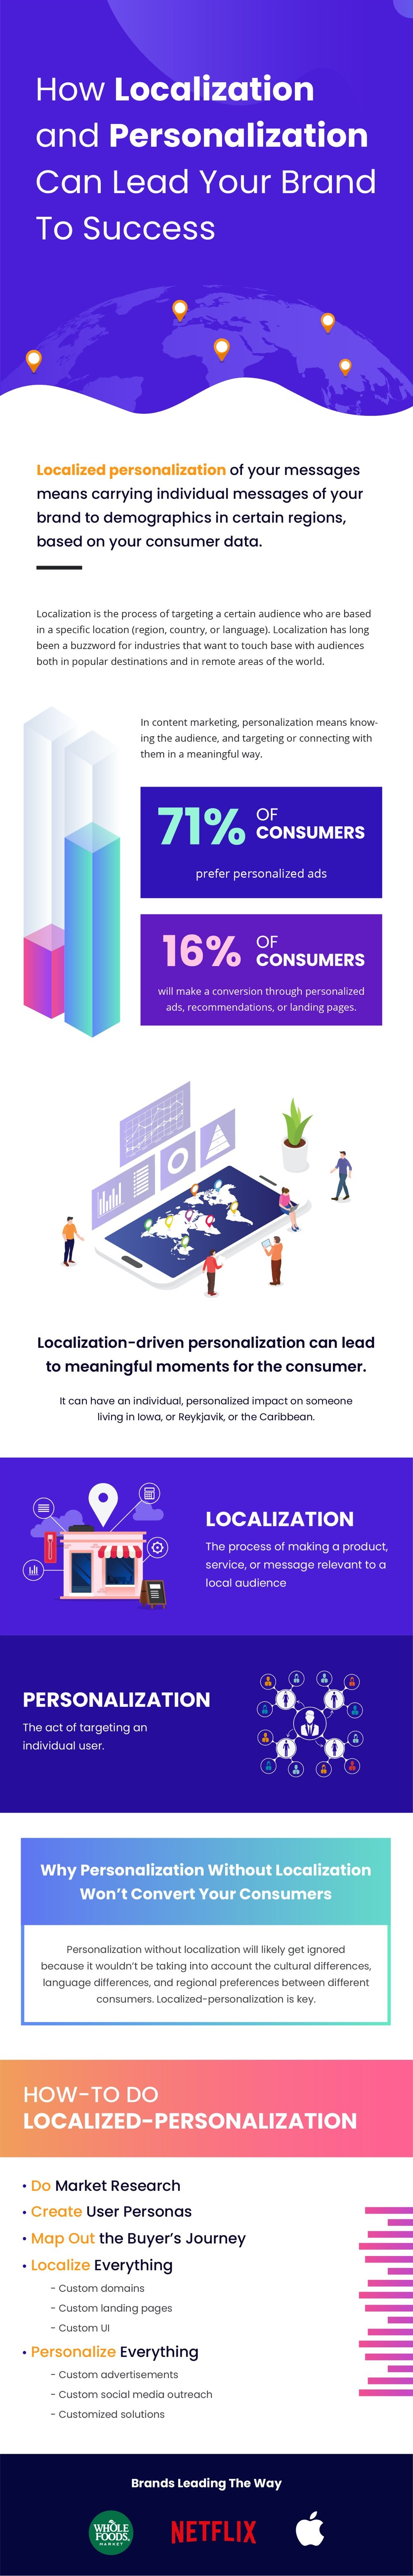 How Localization and Personalization Can Lead Your Brand To Success